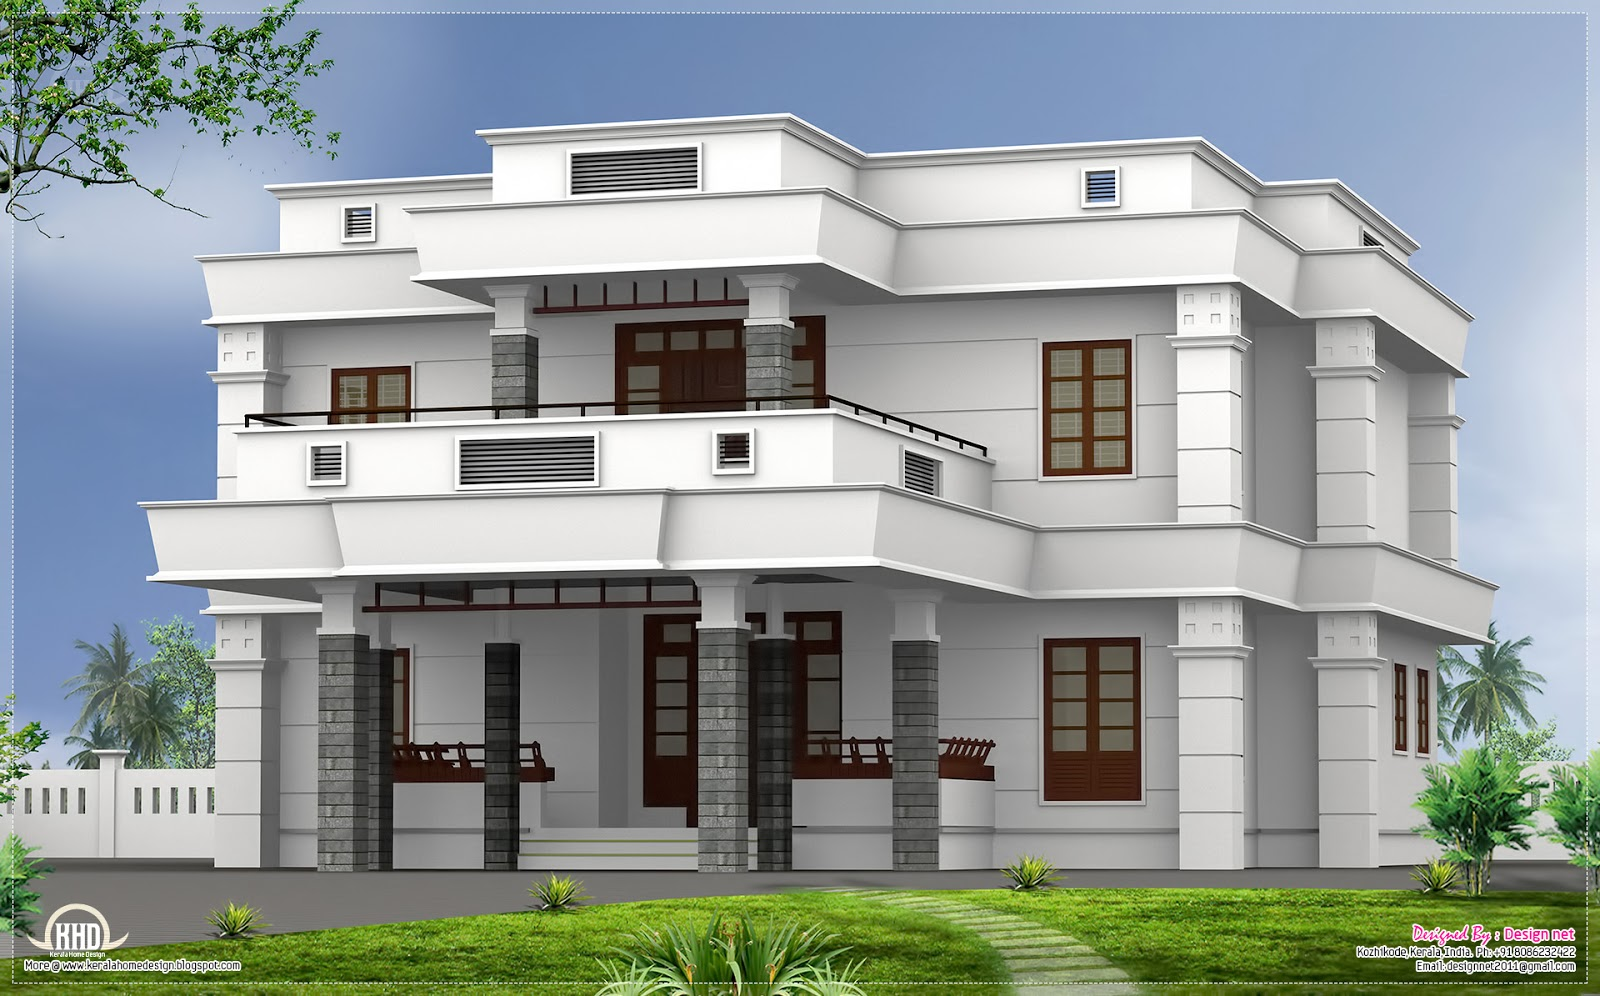 5 BHK modern flat roof house design